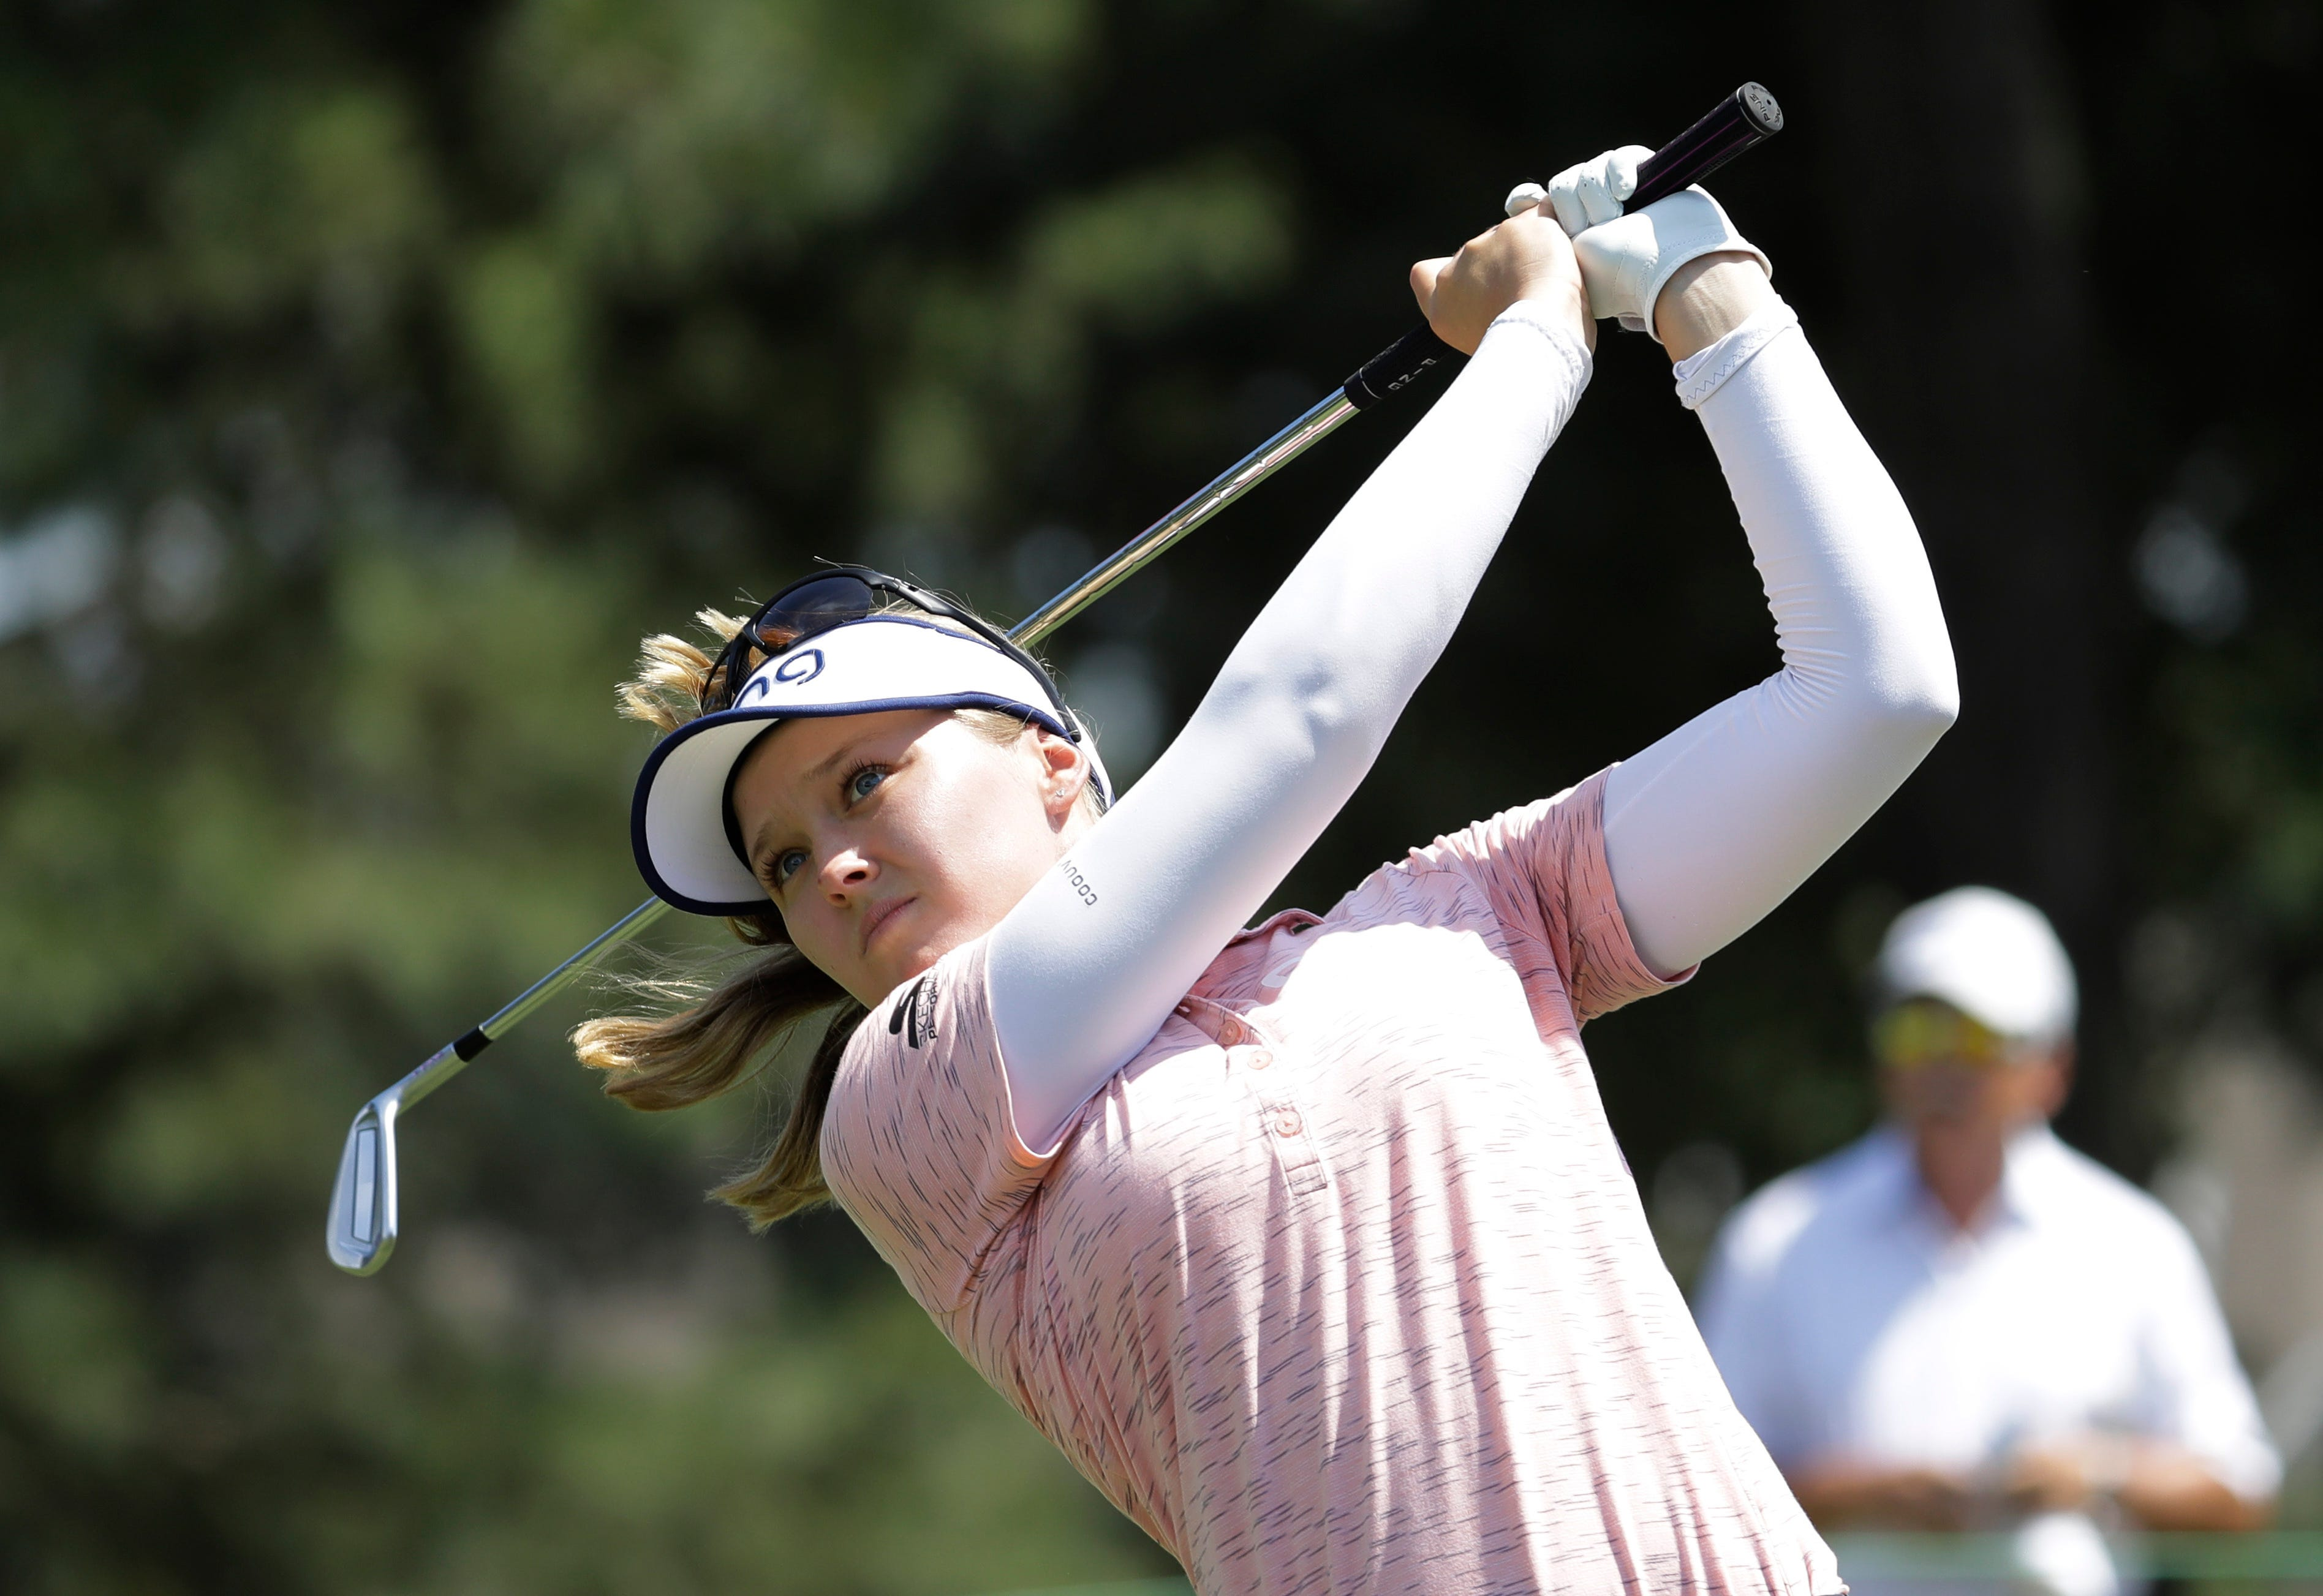 Law shoots 67, completes wire-to-wire LPGA win